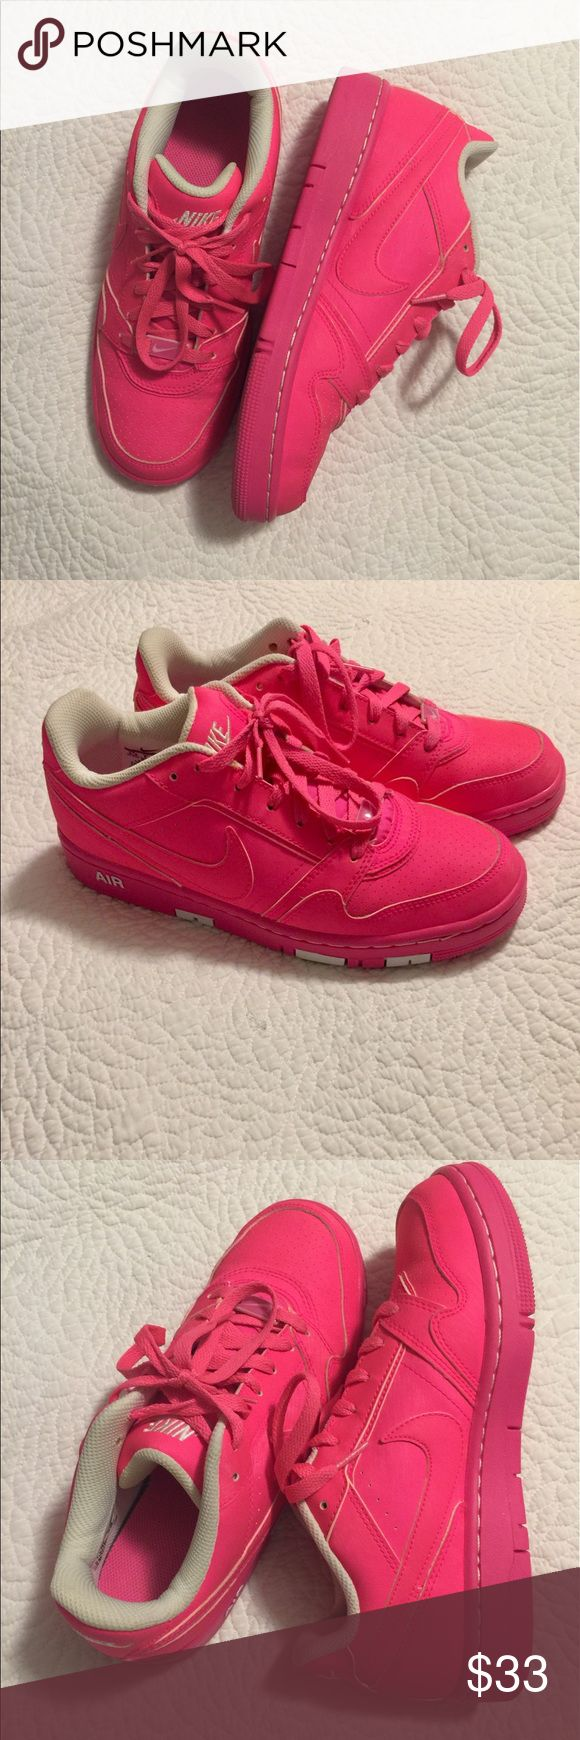 Nike Air Hot Pink Basketball shoes Great condition, barely worn,  pink and white Nike Air Basketball shoes.  If you like pink you will love these shoes. Nike Shoes Athletic Shoes